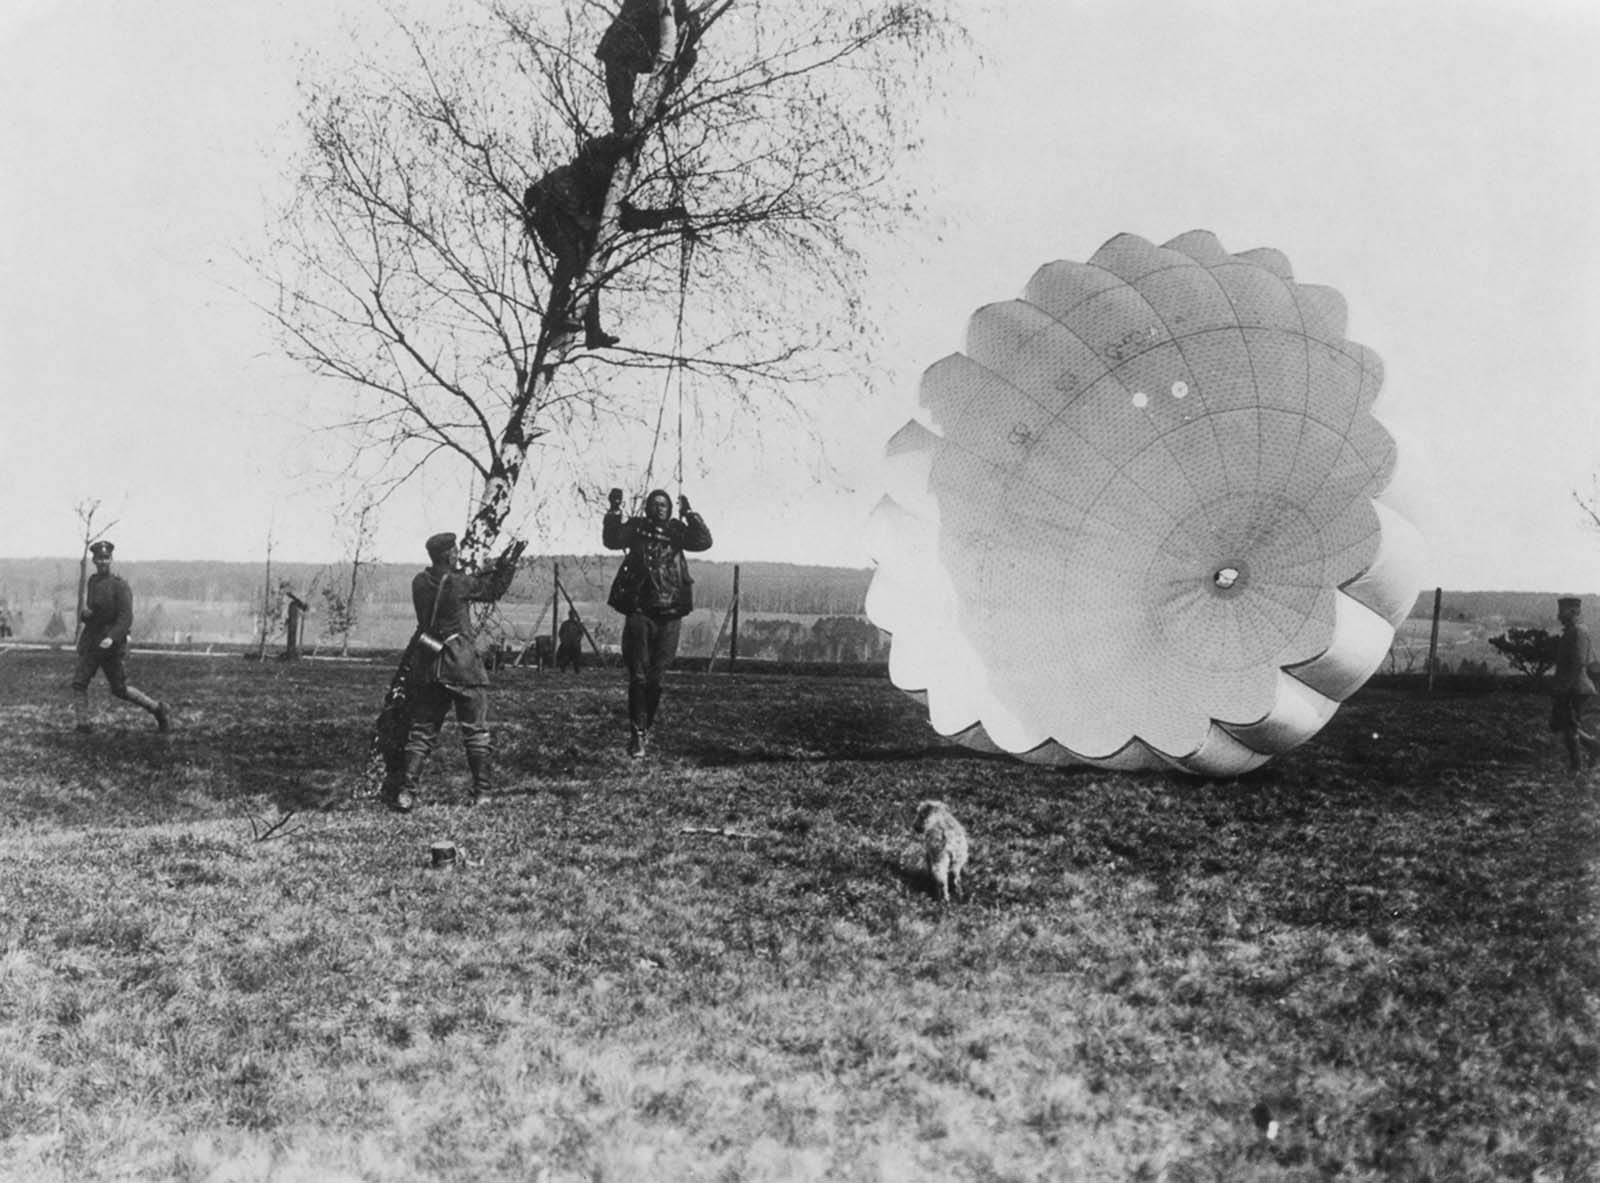 An observer is disentangled from a tree after parachuting from his balloon. 1918.